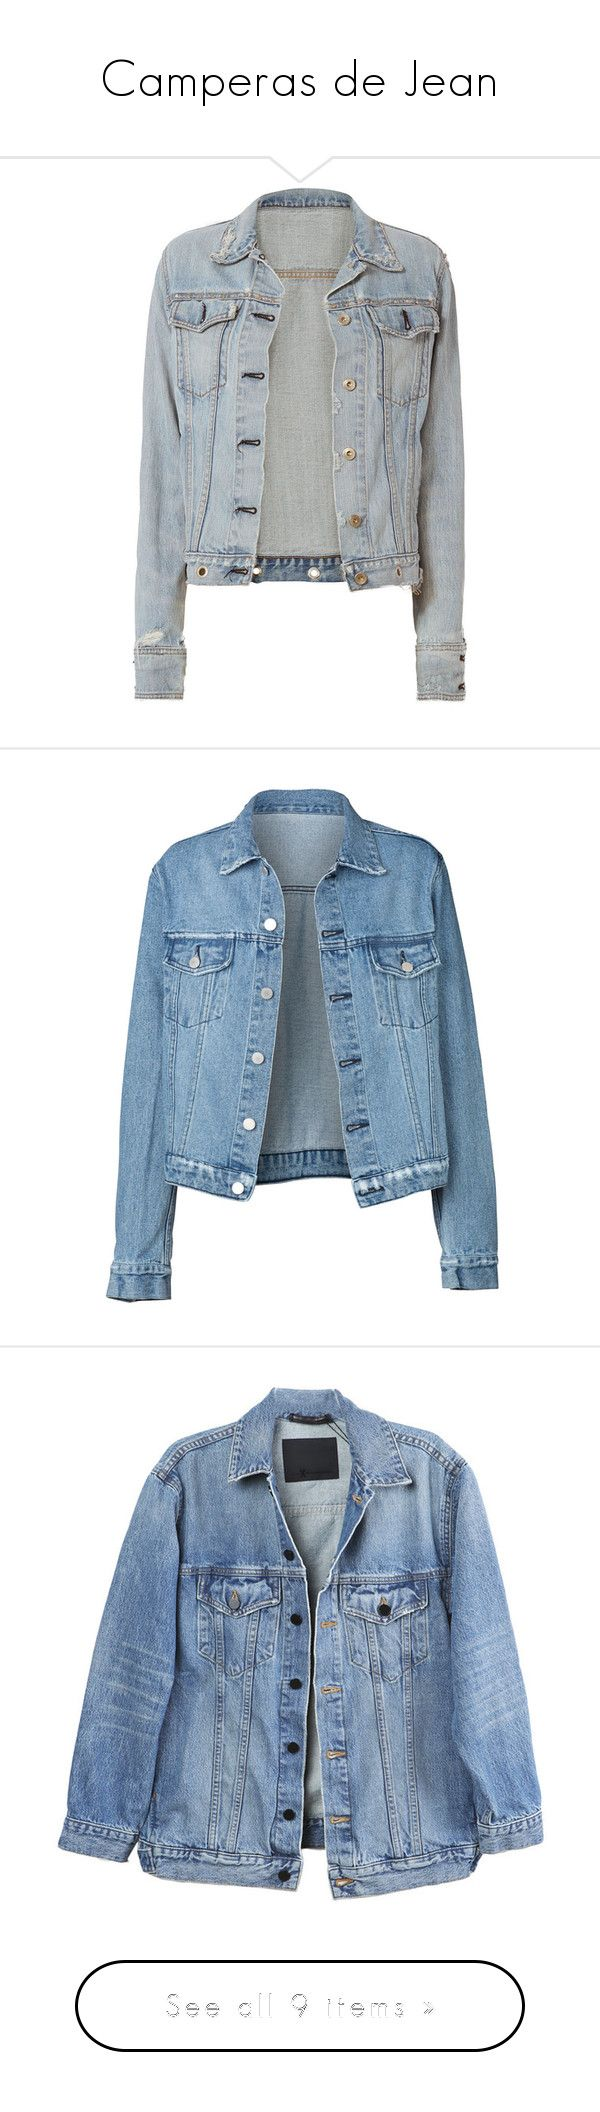 """Camperas de Jean"" by allofmeallofme ❤ liked on Polyvore featuring outerwear, jackets, coats & jackets, denim jacket, tops, denim, studded denim jackets, distressed denim jacket, rag bone jacket and studded jean jacket"